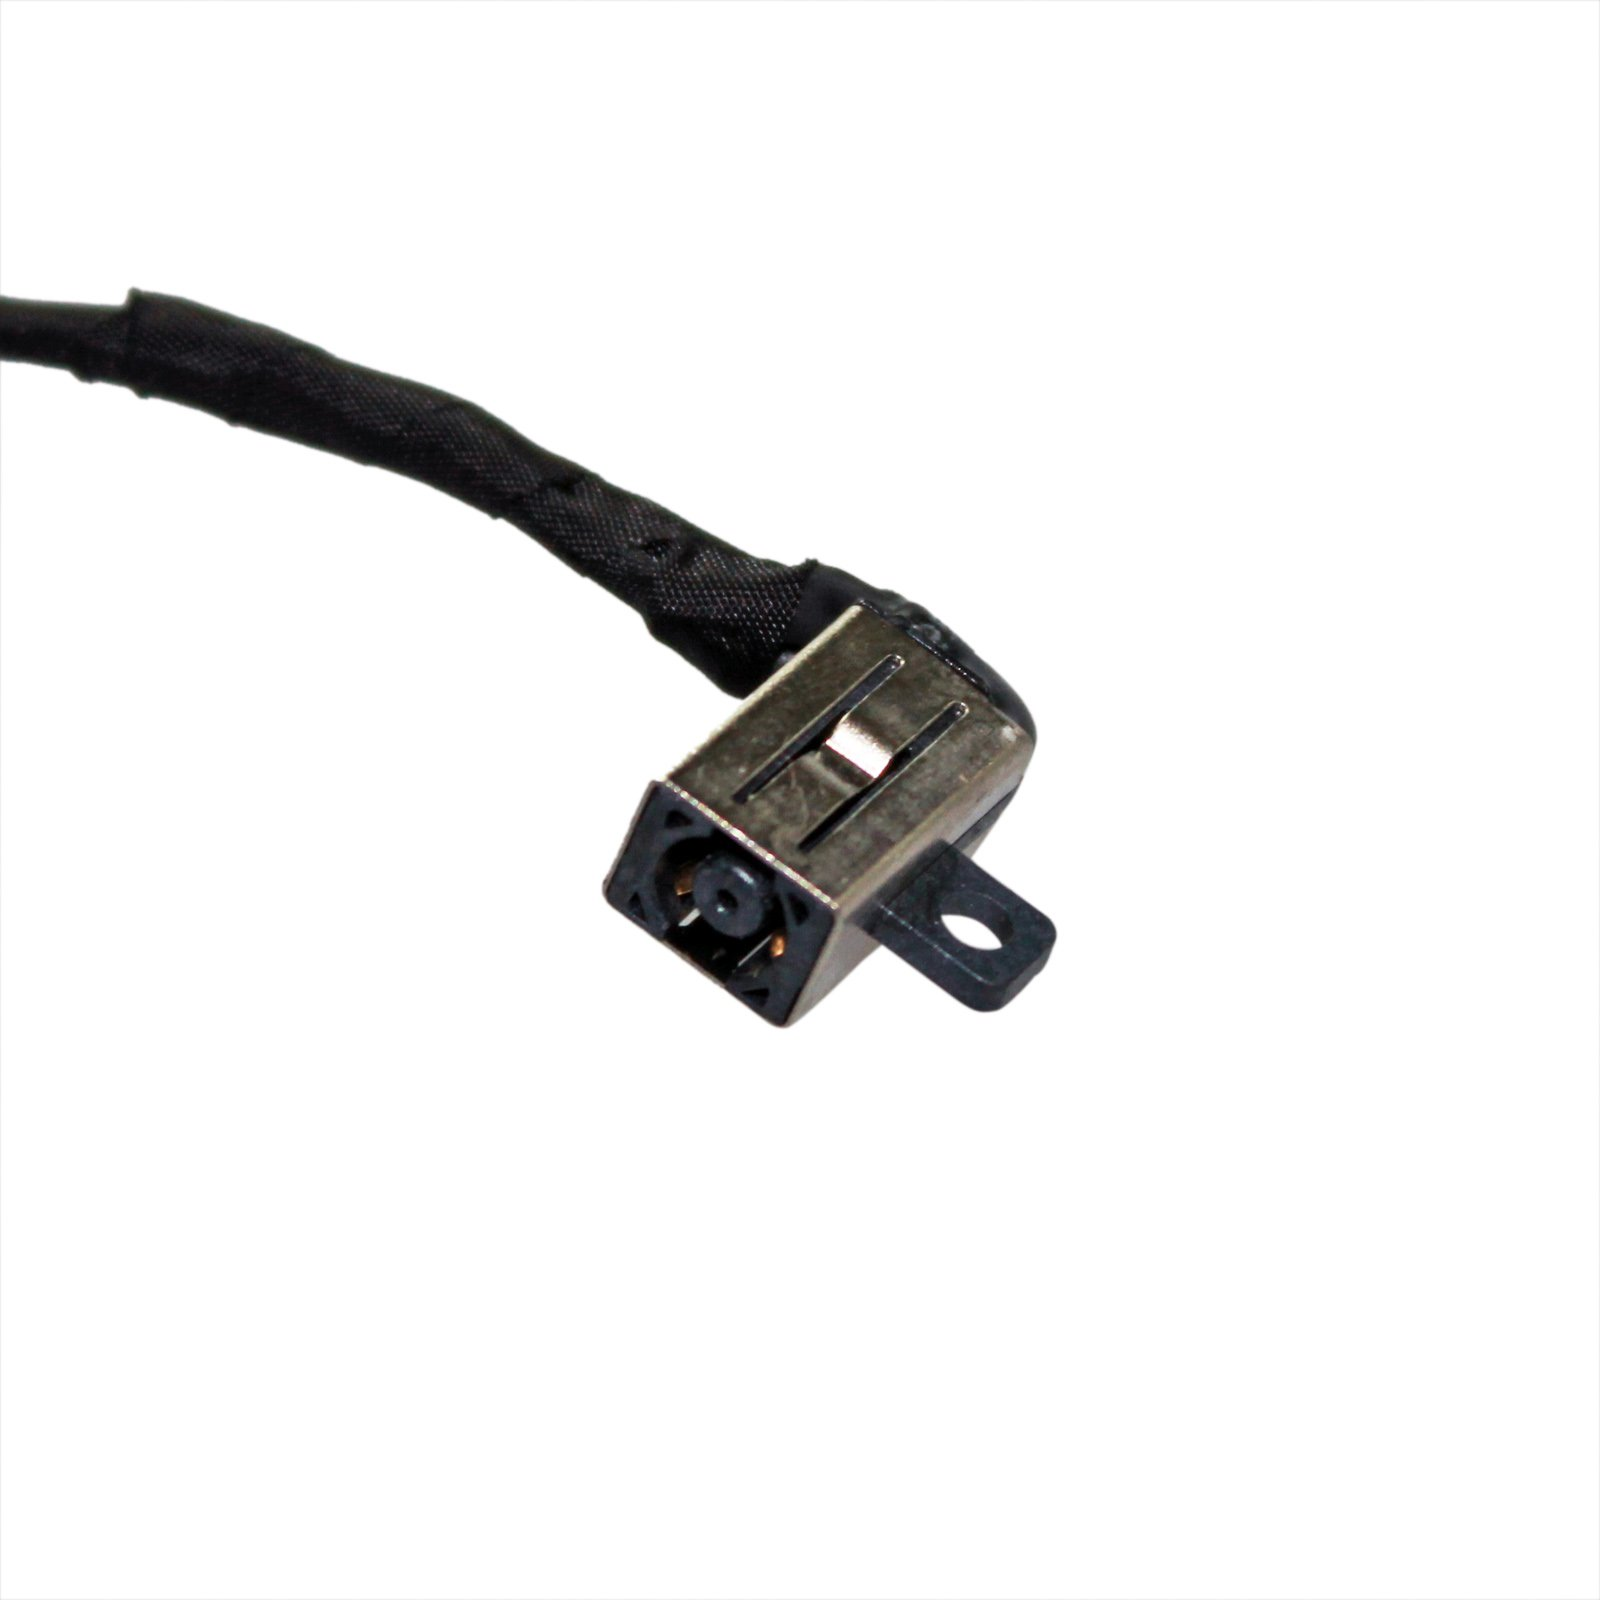 Iwlikey Compatible for Dell Inspiron 15-5000 5551 5552 5555 5557 5558 5559 14-5458 5459 5455 5452 P51F P64G DC30100UD00 Vostro 3458 3558 3559 P65G 3559 2 Pack For Dell 15-5000 DC Power Jack Harness